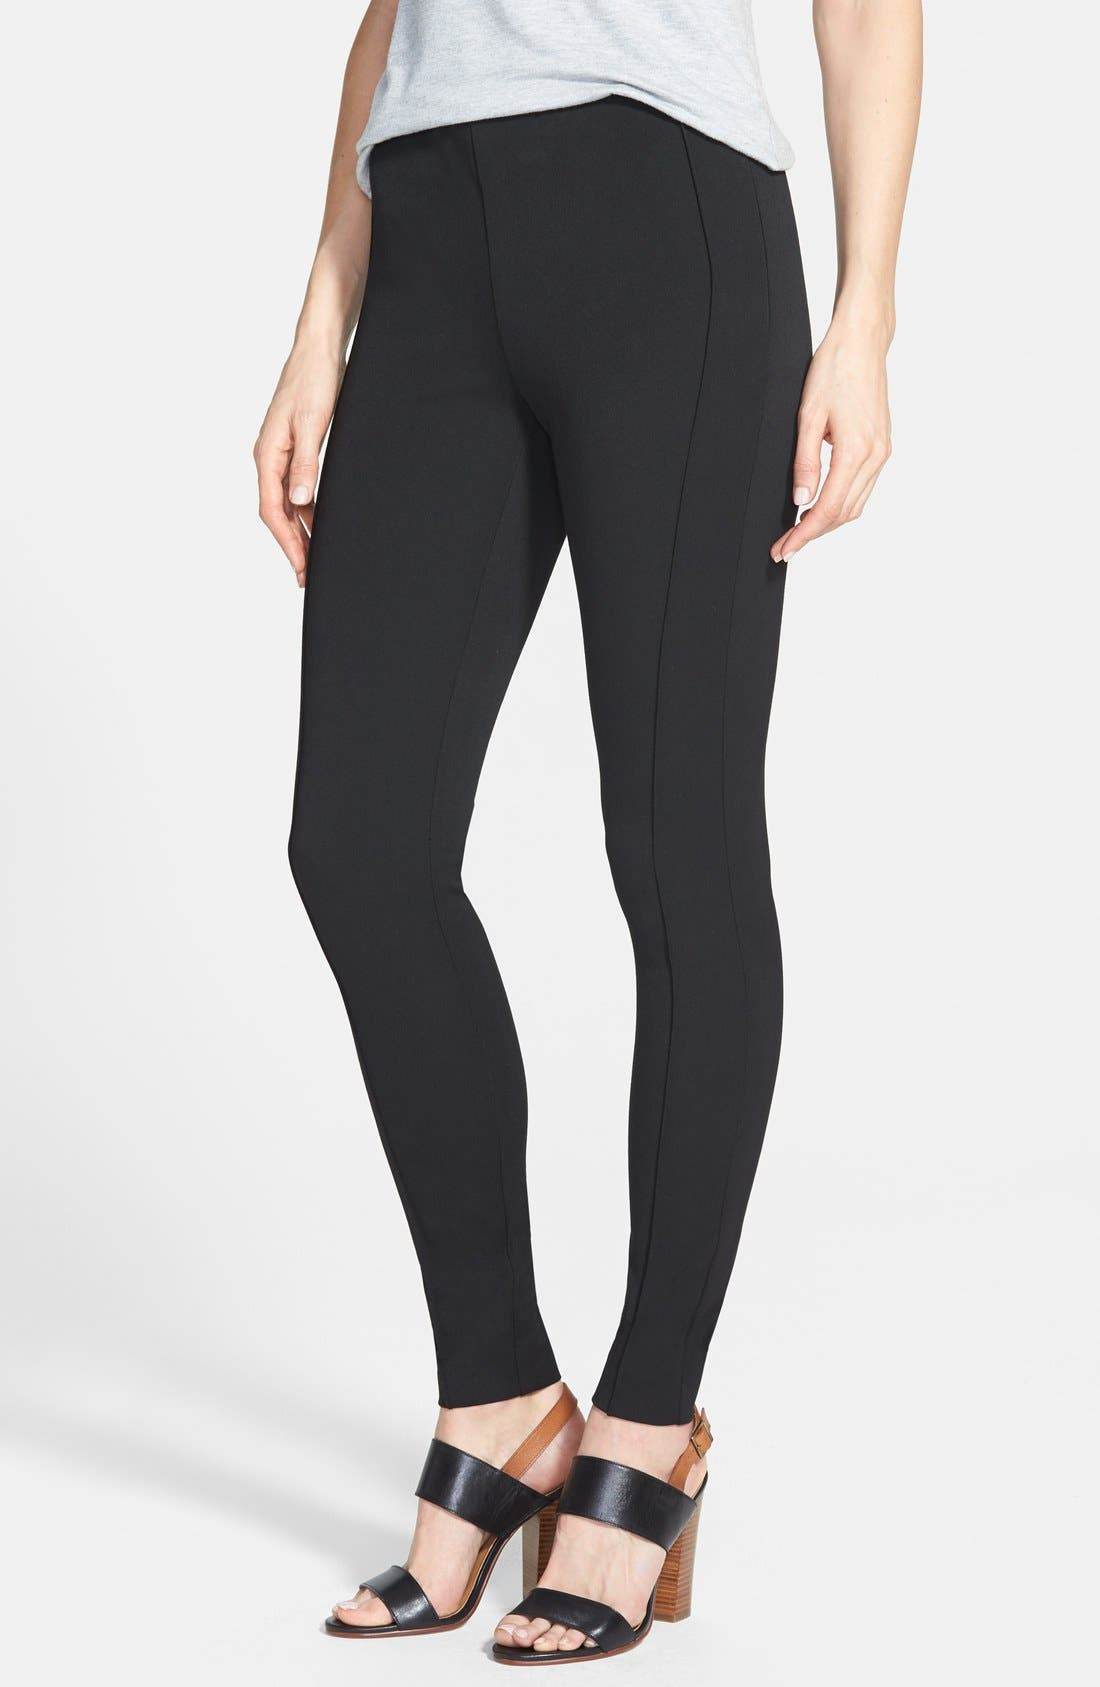 Alternate Image 1 Selected - Vince Camuto Side Zip Skinny Pants (Regular & Petite)